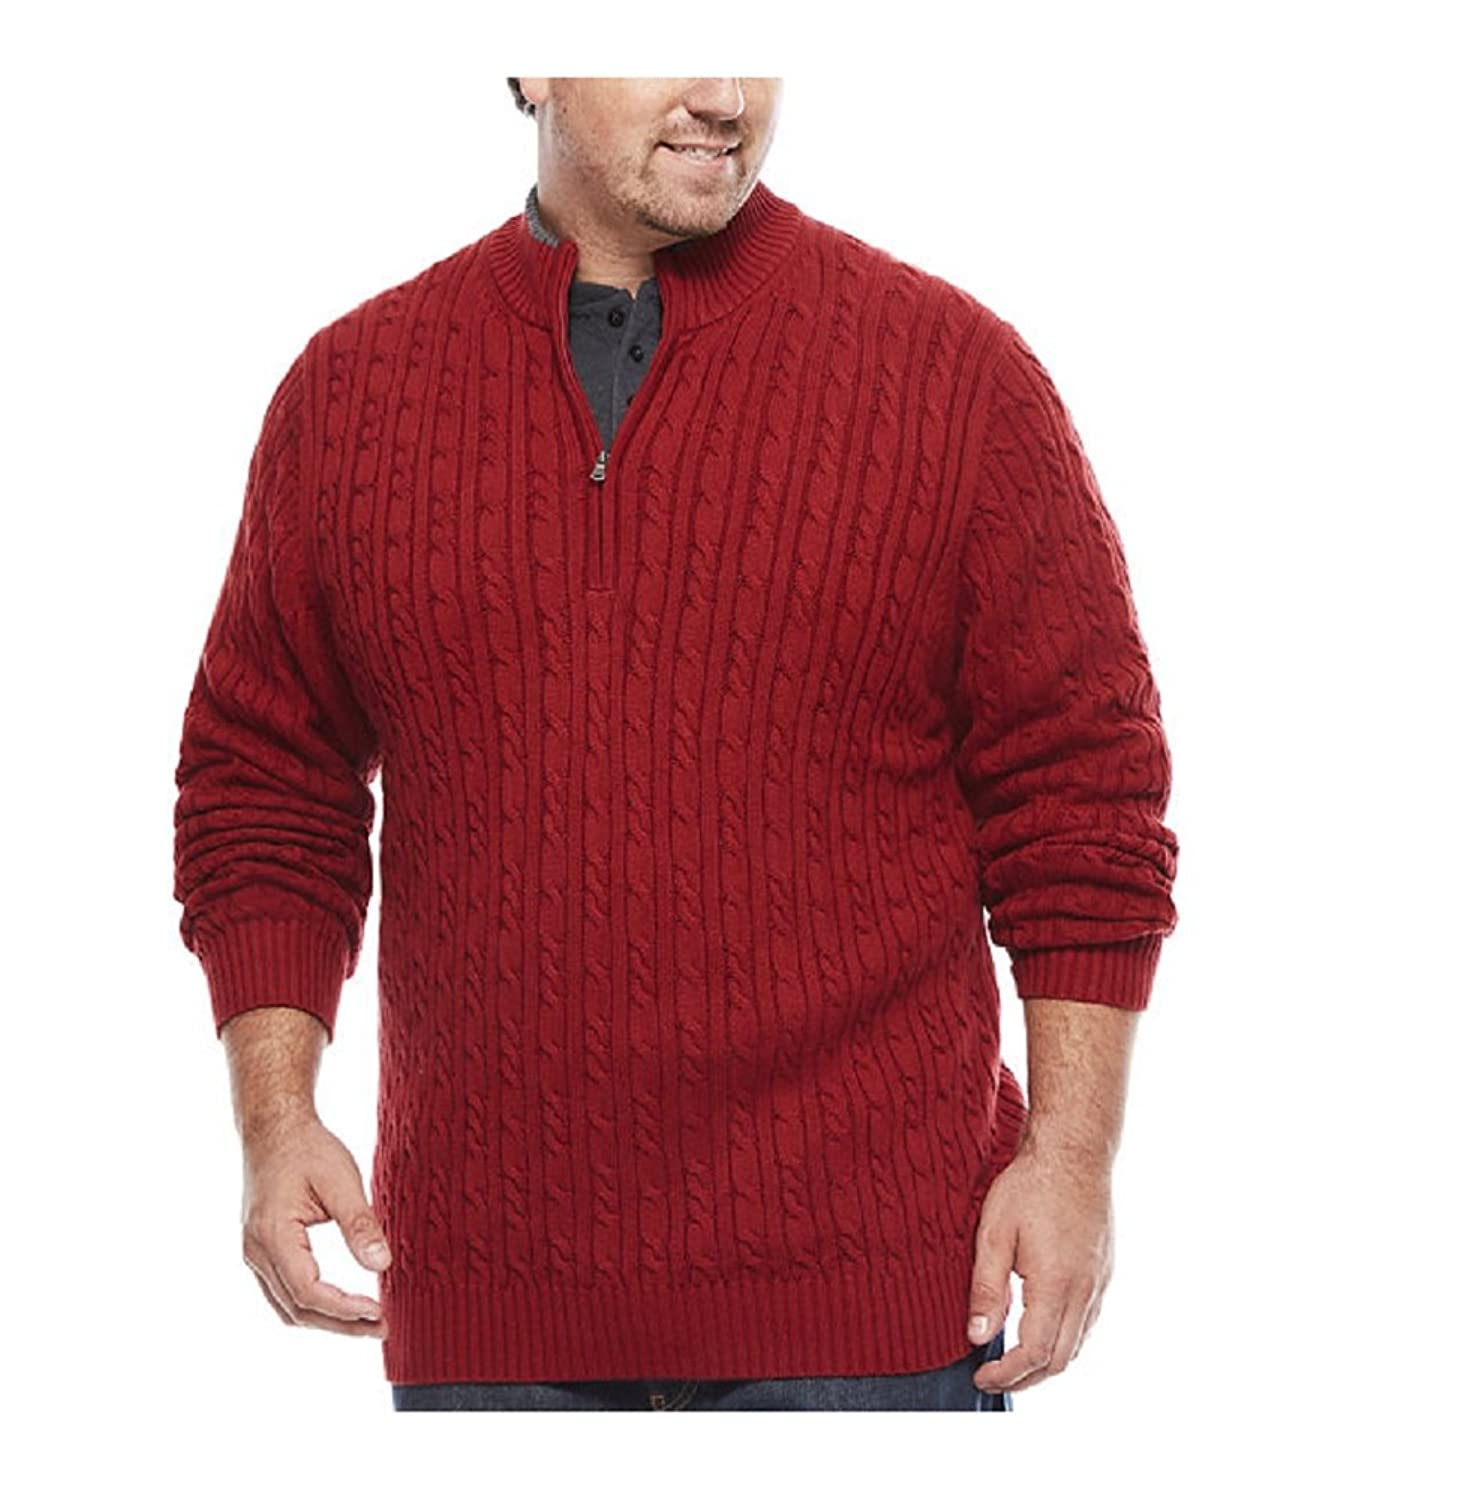 Amazon.com: Ken Bone Red Debate Costume Adult Sweater: Clothing